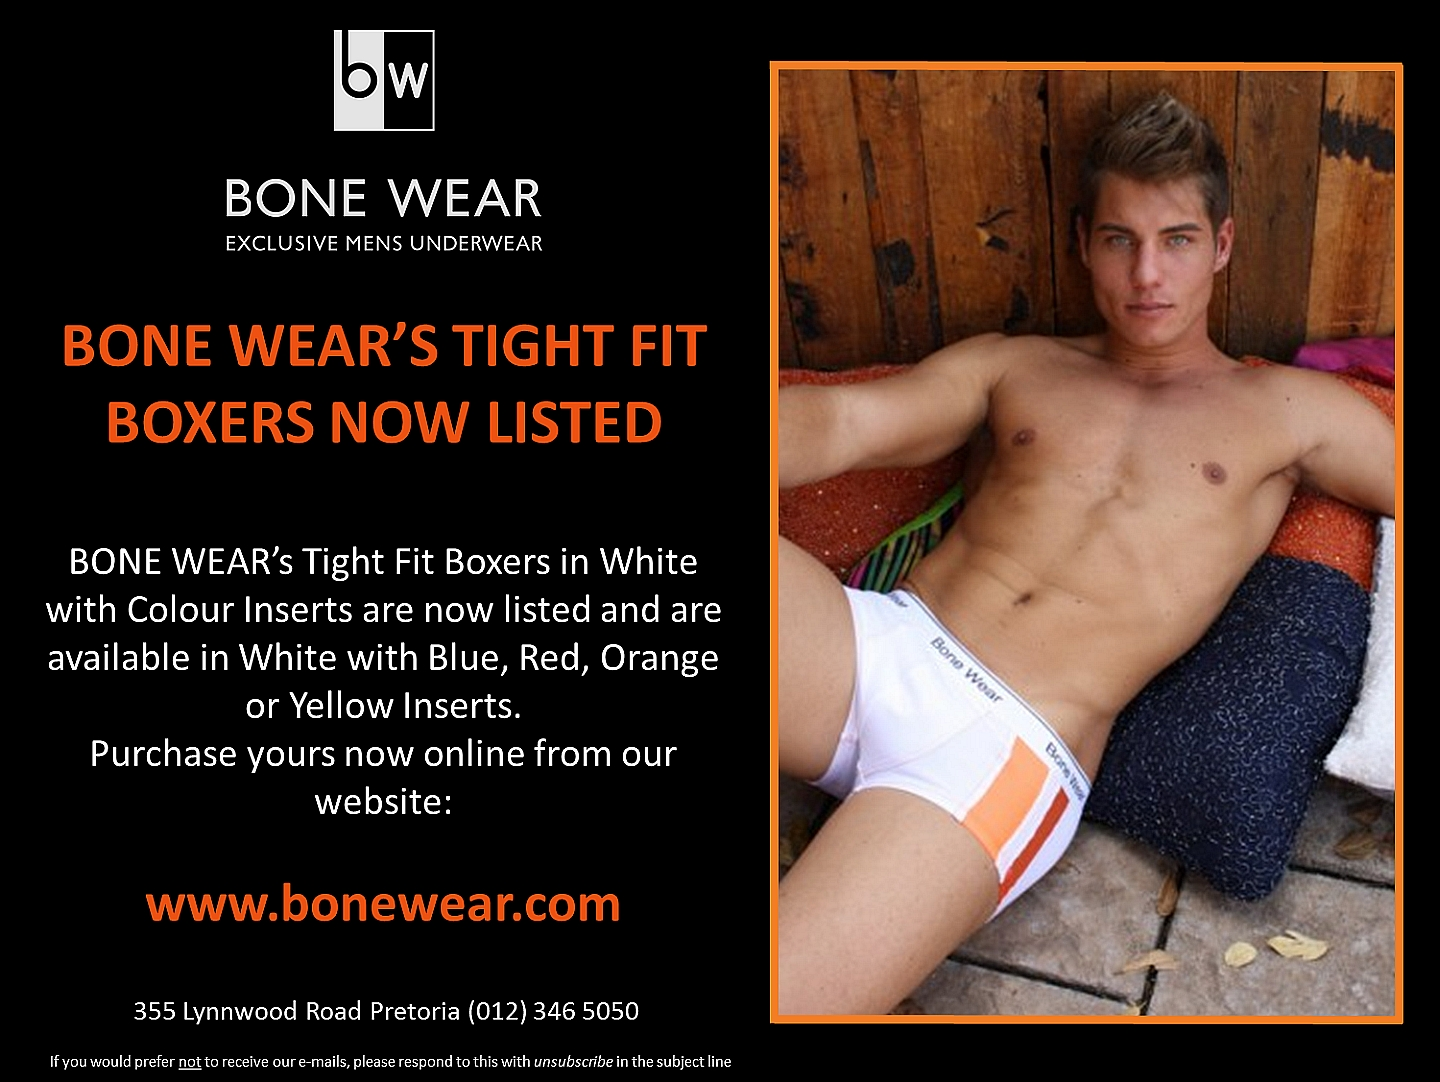 BONE WEAR's Tight Fit Boxers now available